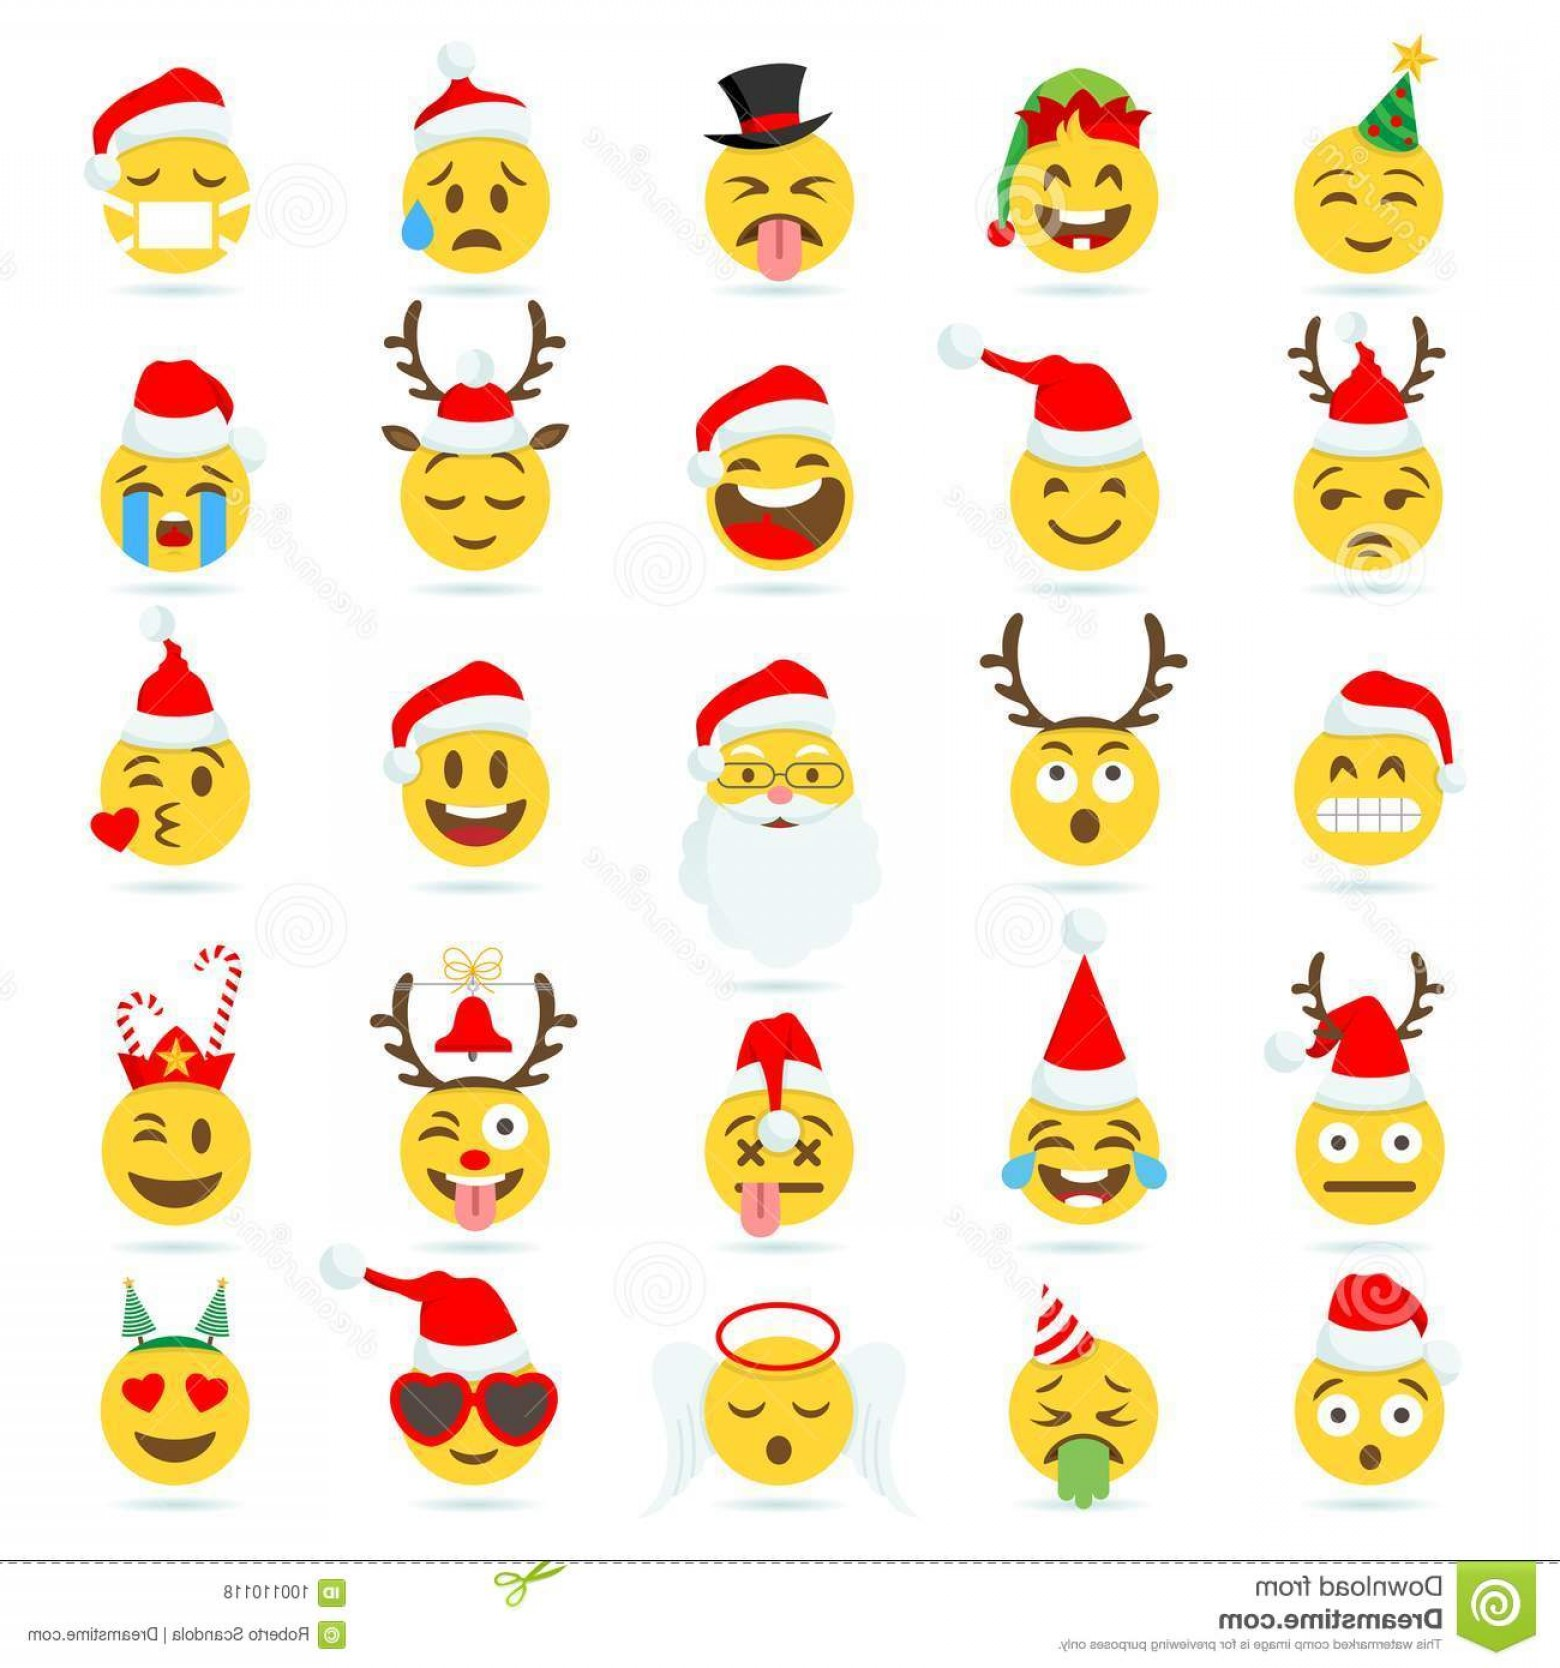 Popular Vector Emoji: Christmas Emoticon Vector Emoji Big Set High Quality Cartoonish Emoticons Theme Image